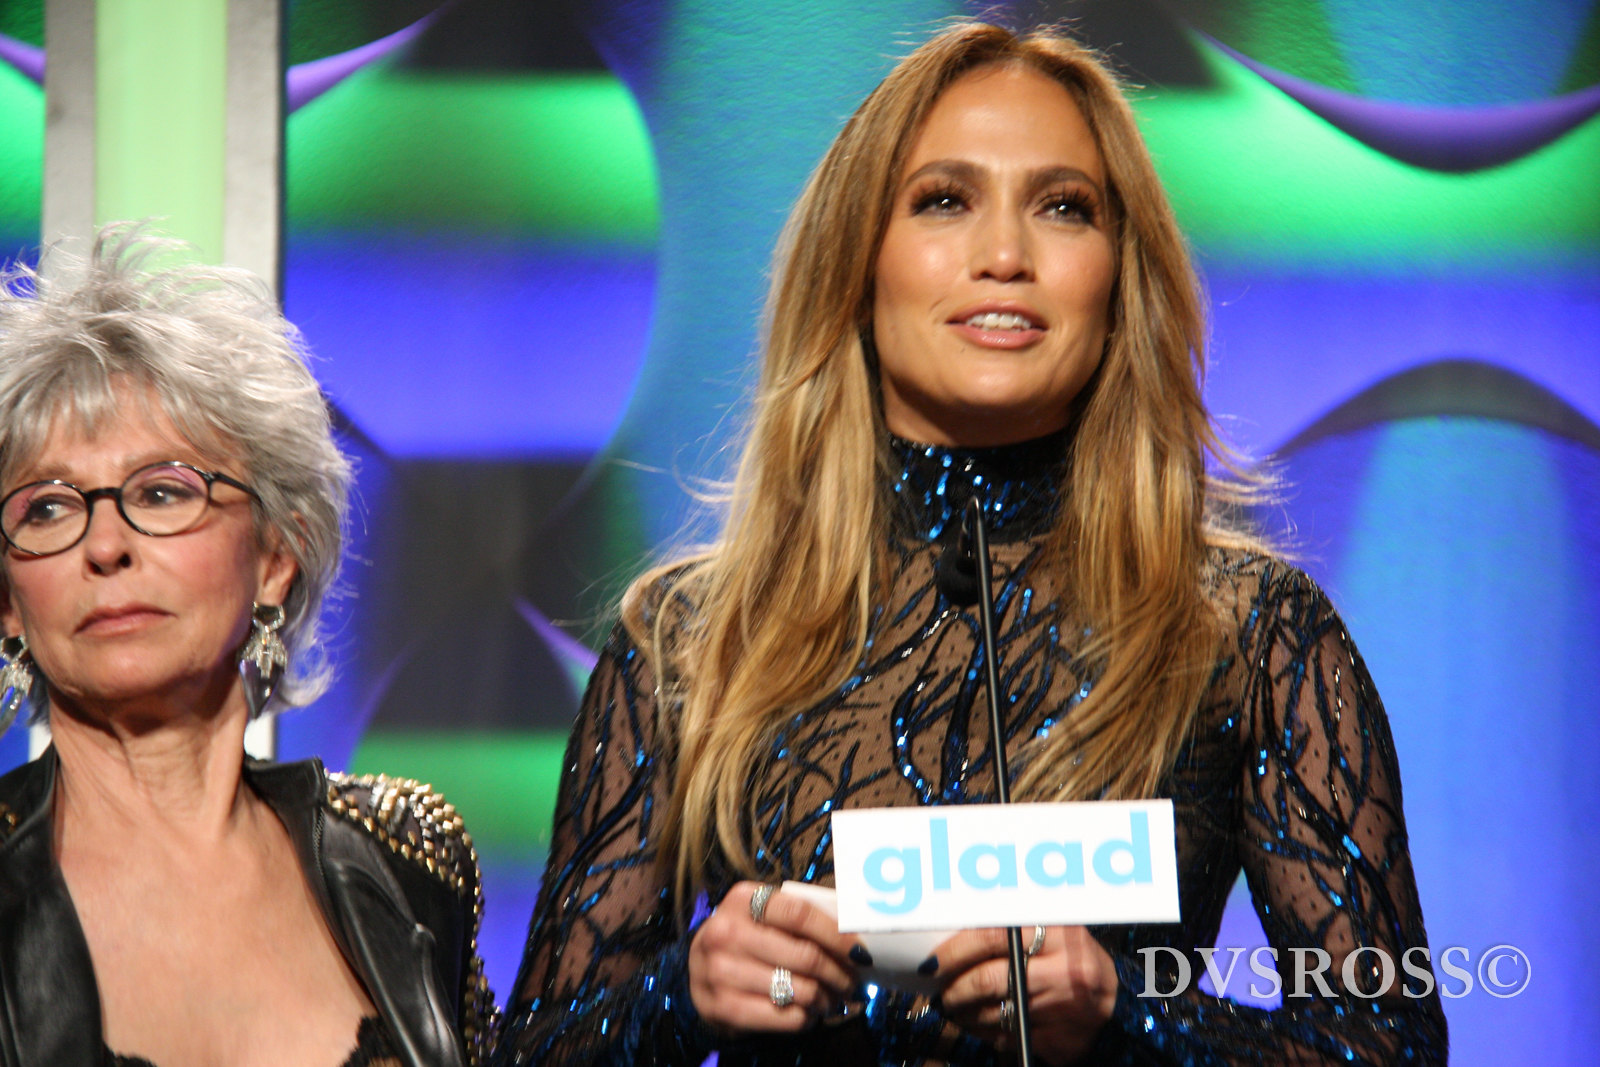 Photo: Flickr, DVSROSS - GLAAD 2014 - Jennifer Lopez - Casper-49 Source URL: https://bit.ly/38hbyGJ Attribution 2.0 Generic (CC BY 2.0)